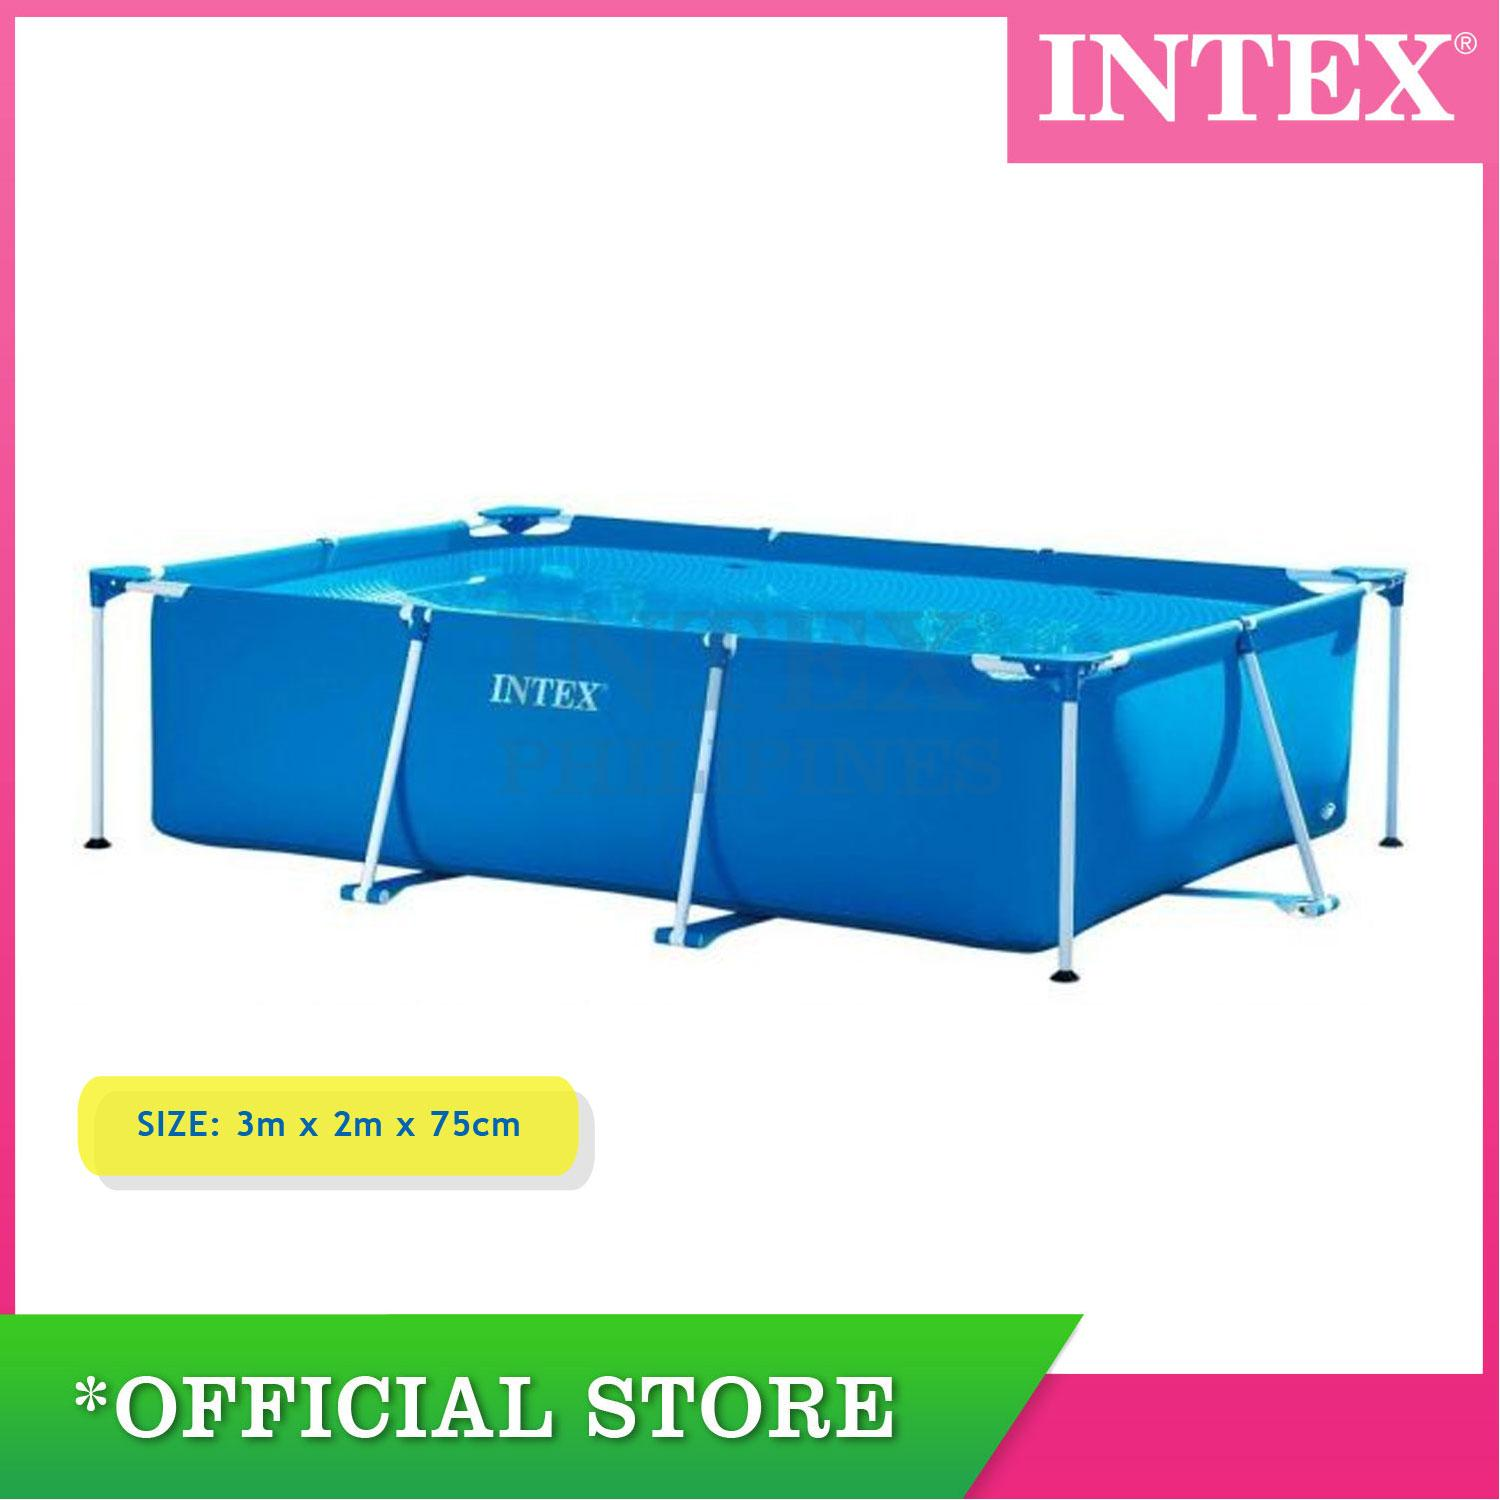 Pool Reinigungsset Intex Intex Rectangular Frame Pool 3 00m X 2 00m X 75cm